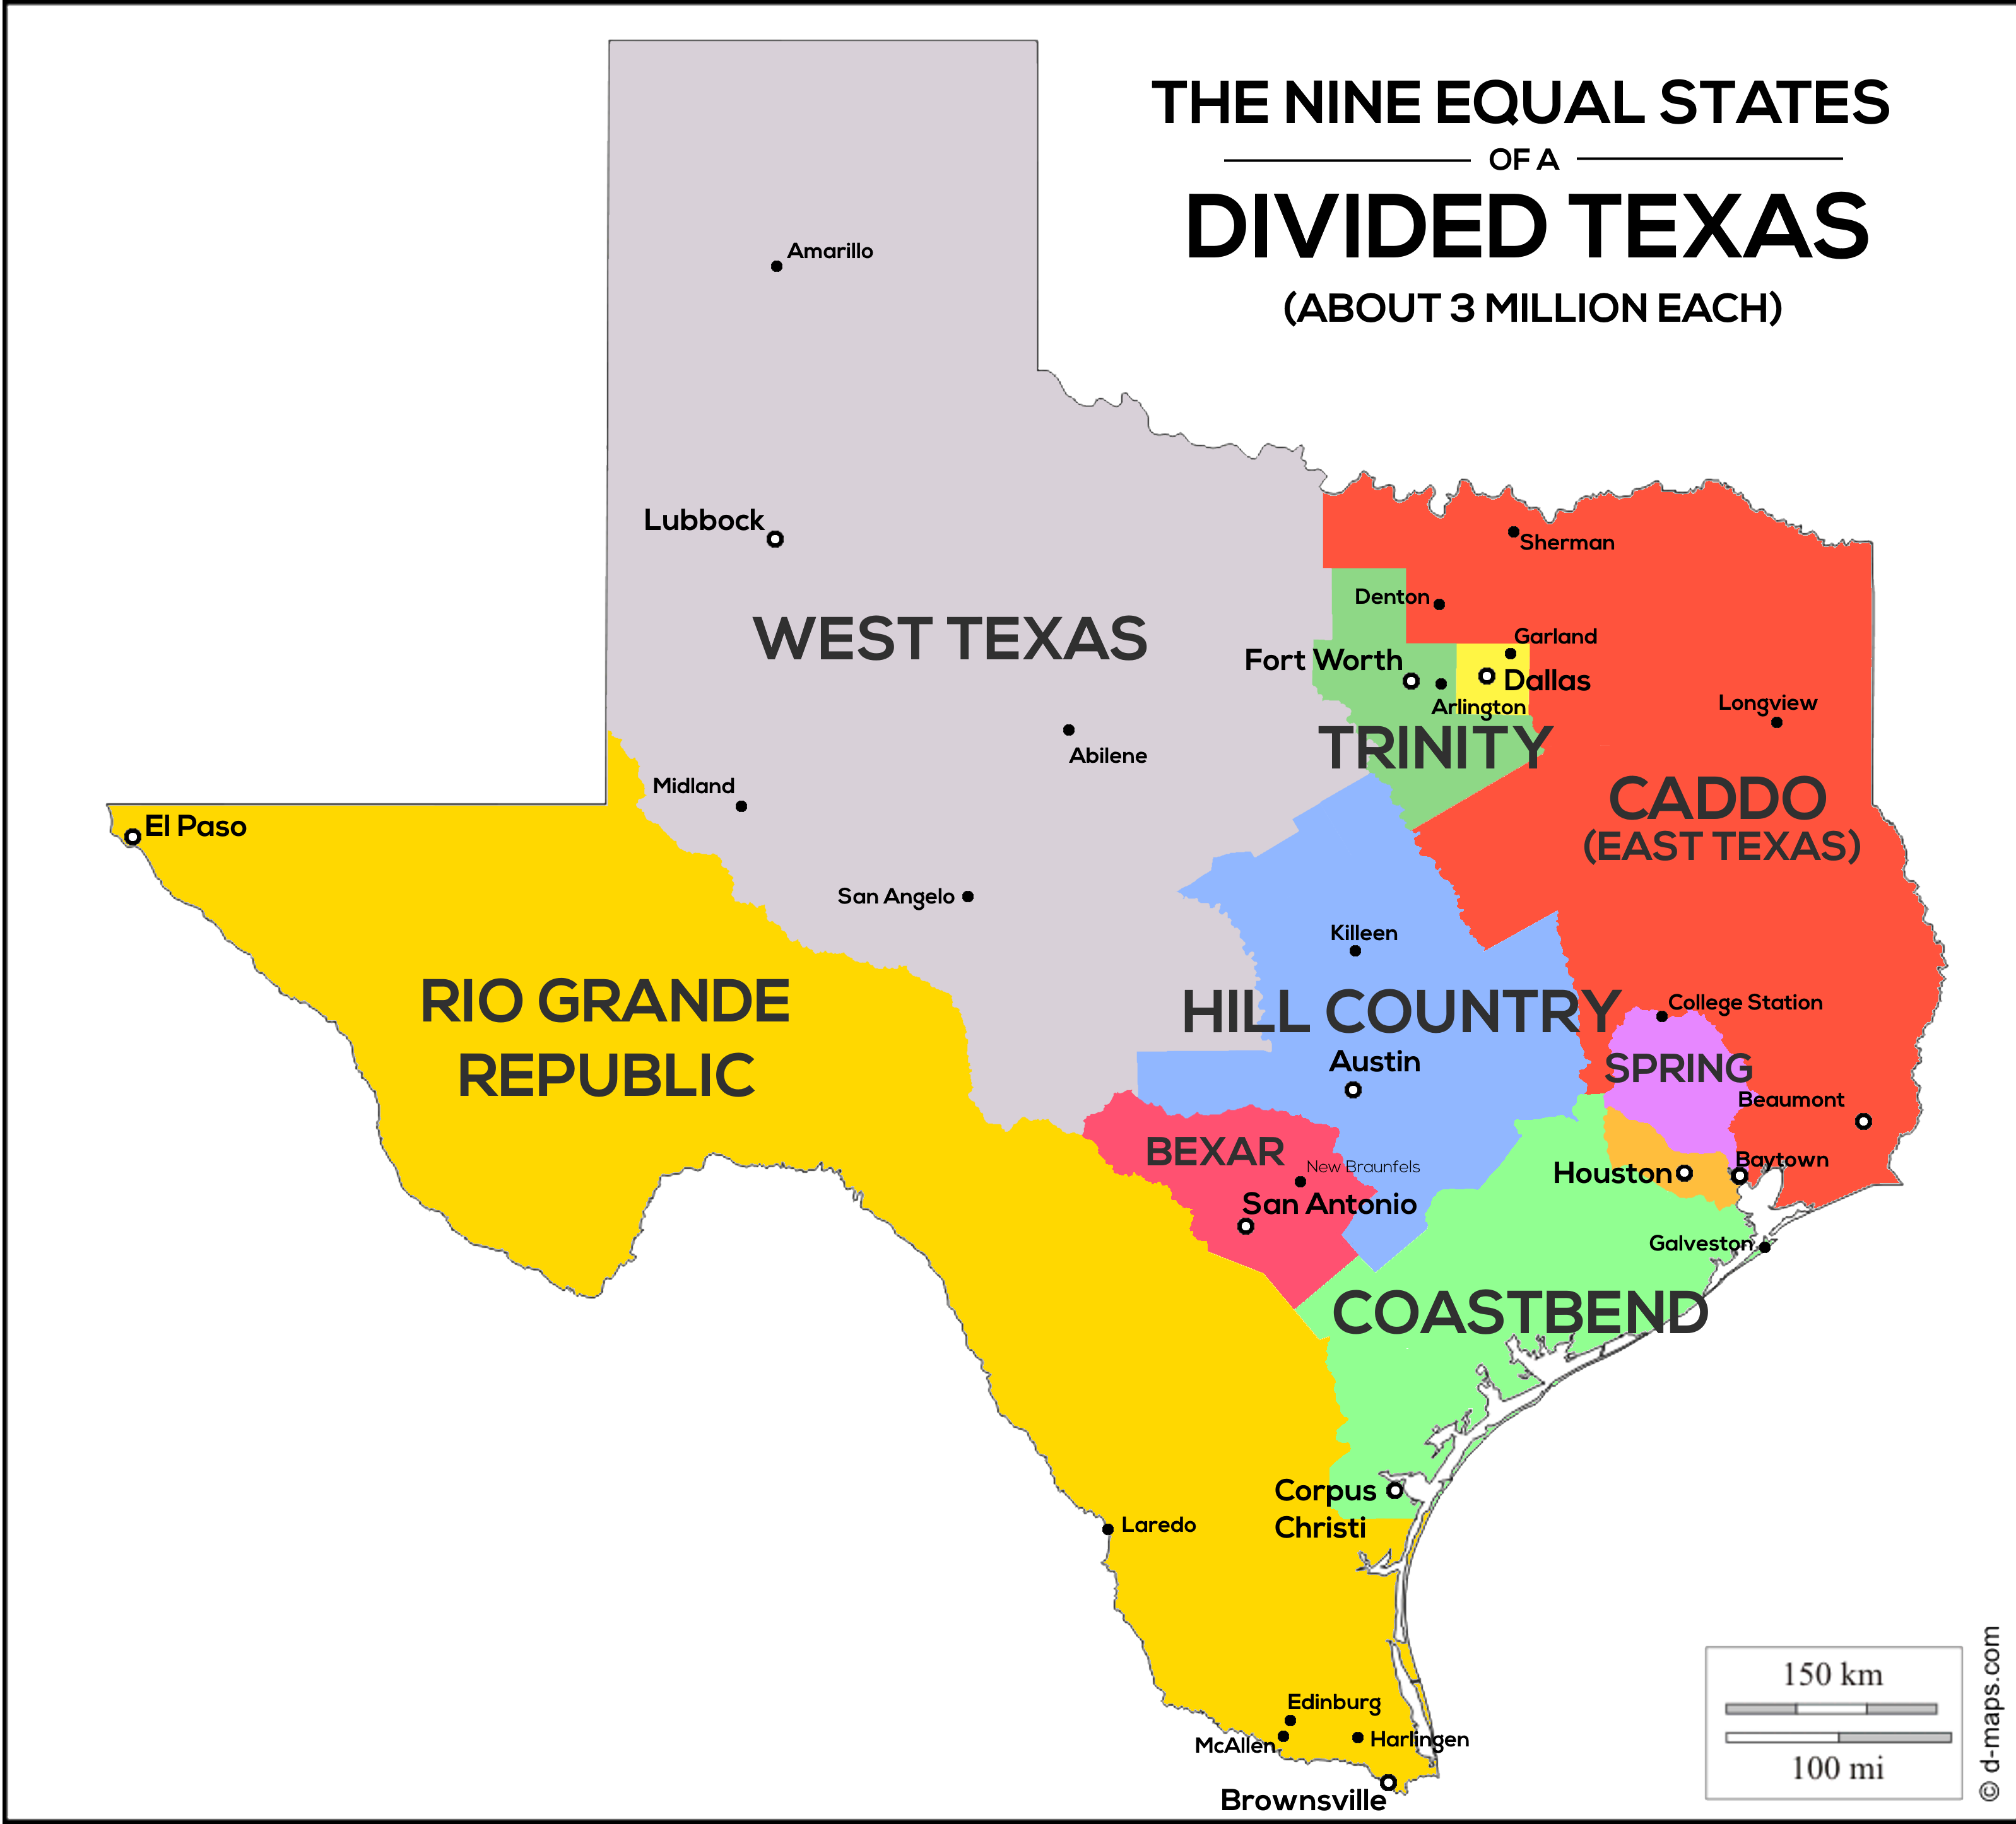 Nine Equal States Of A Divided Texas Population Map Oc 3195x2891 Texas Map Republic Of Texas Texas Country